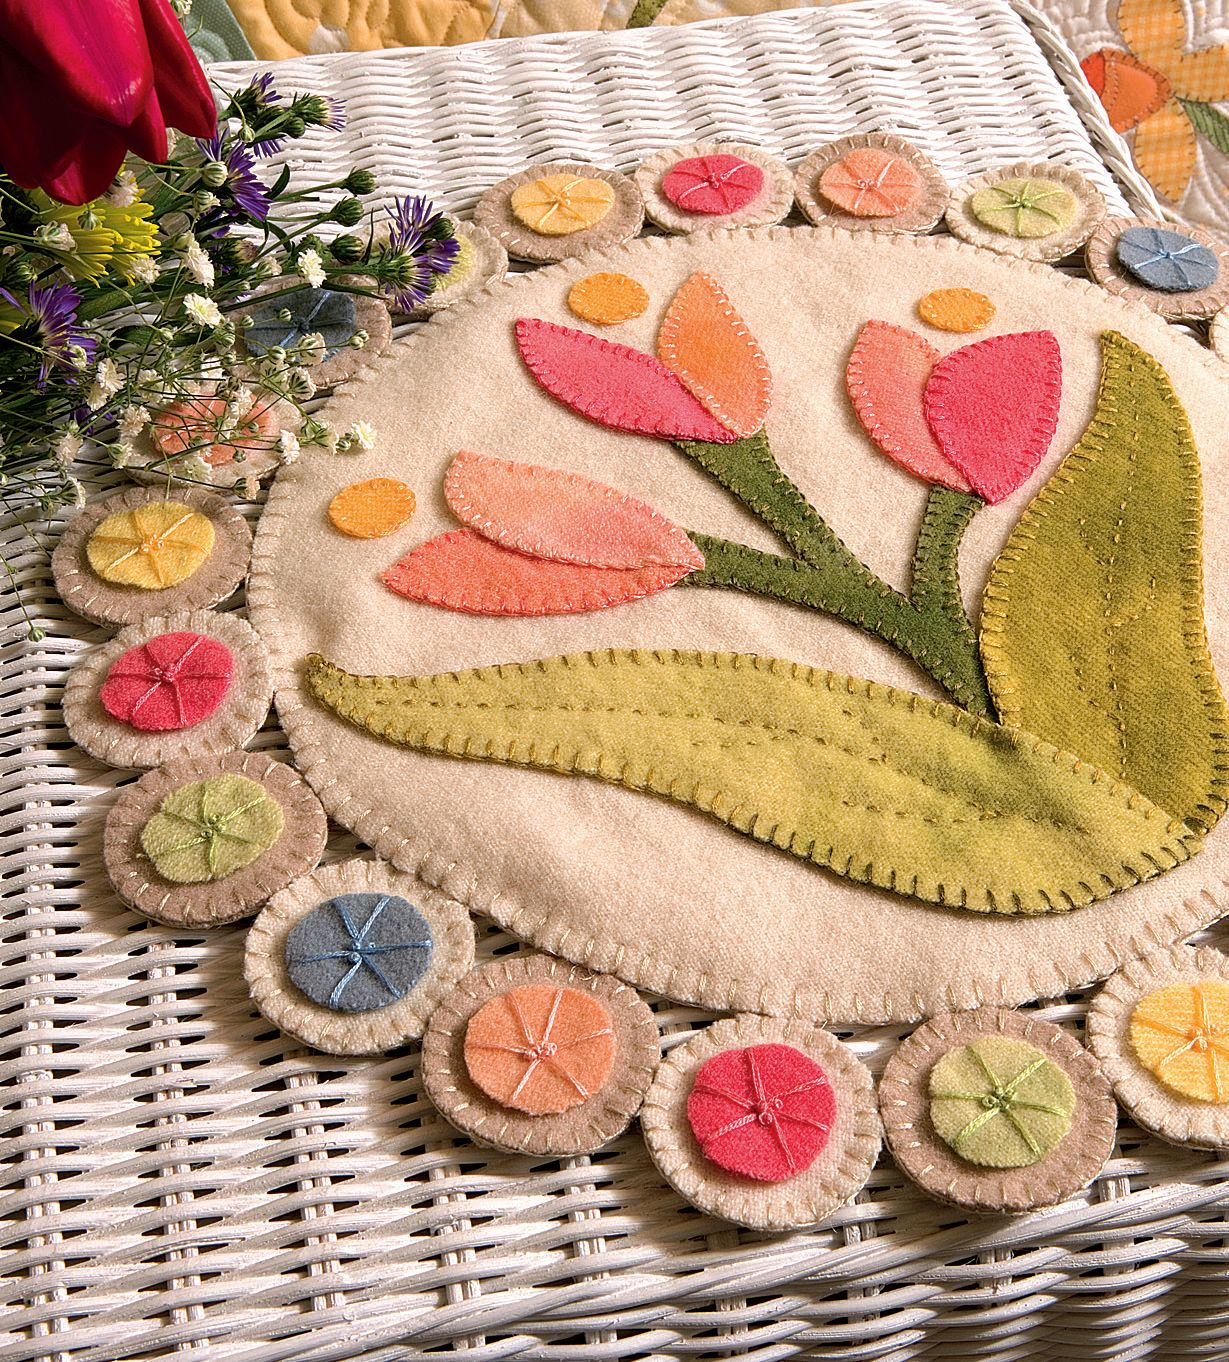 Fanciful flowers and pretty pennies - download the Spring Penny Rug pattern by Julie Popa for free when you sign in or register at our site, ShopMartingale.